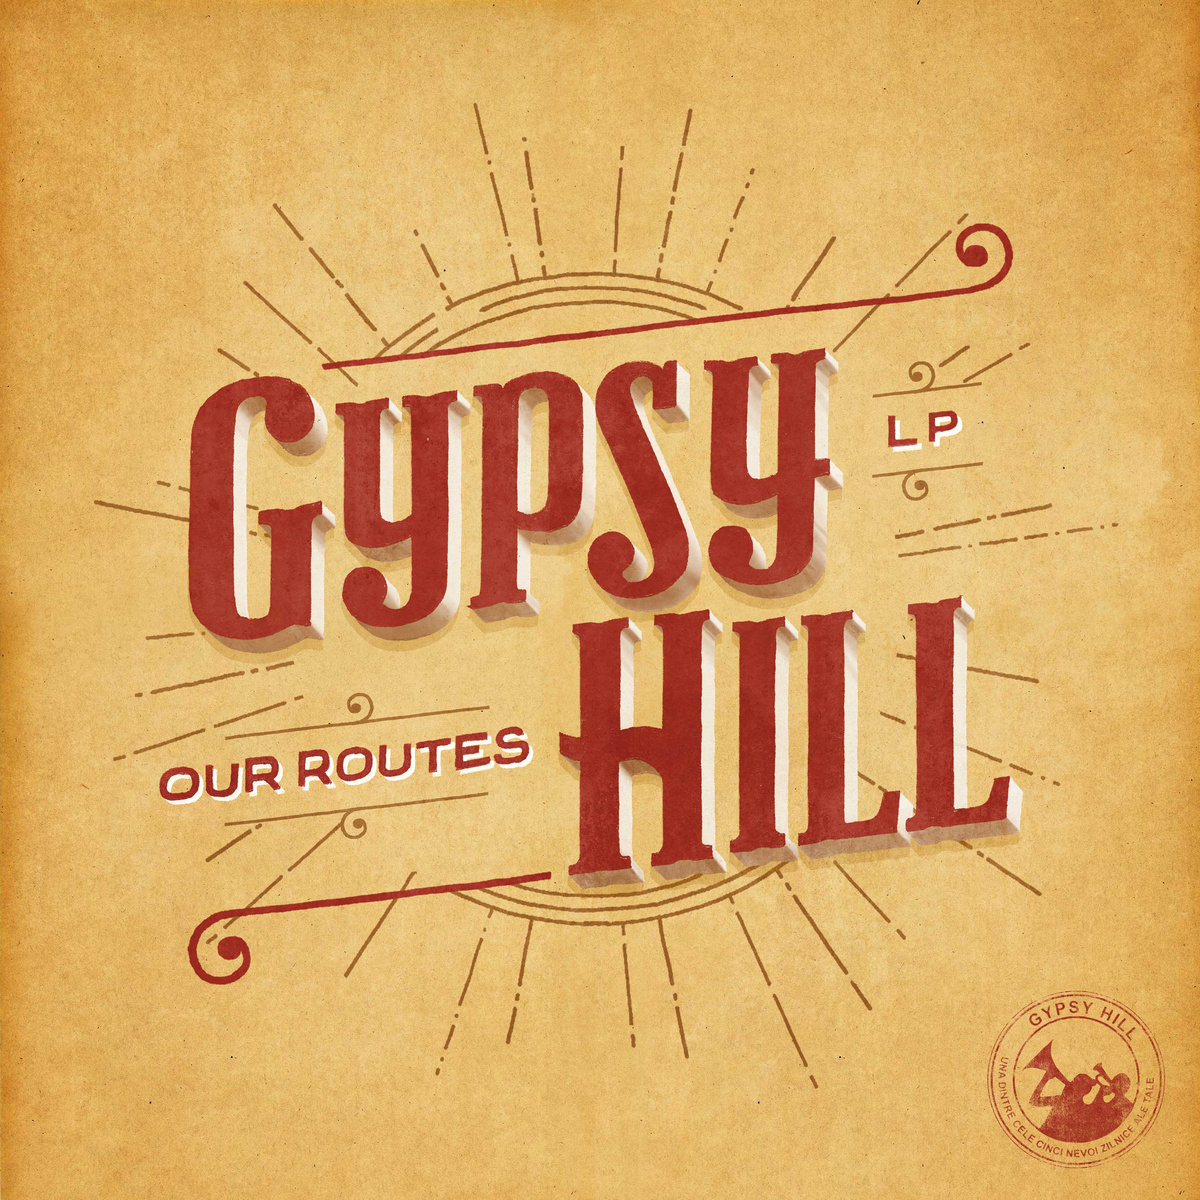 gypsy-hill-our-routes-lpcover